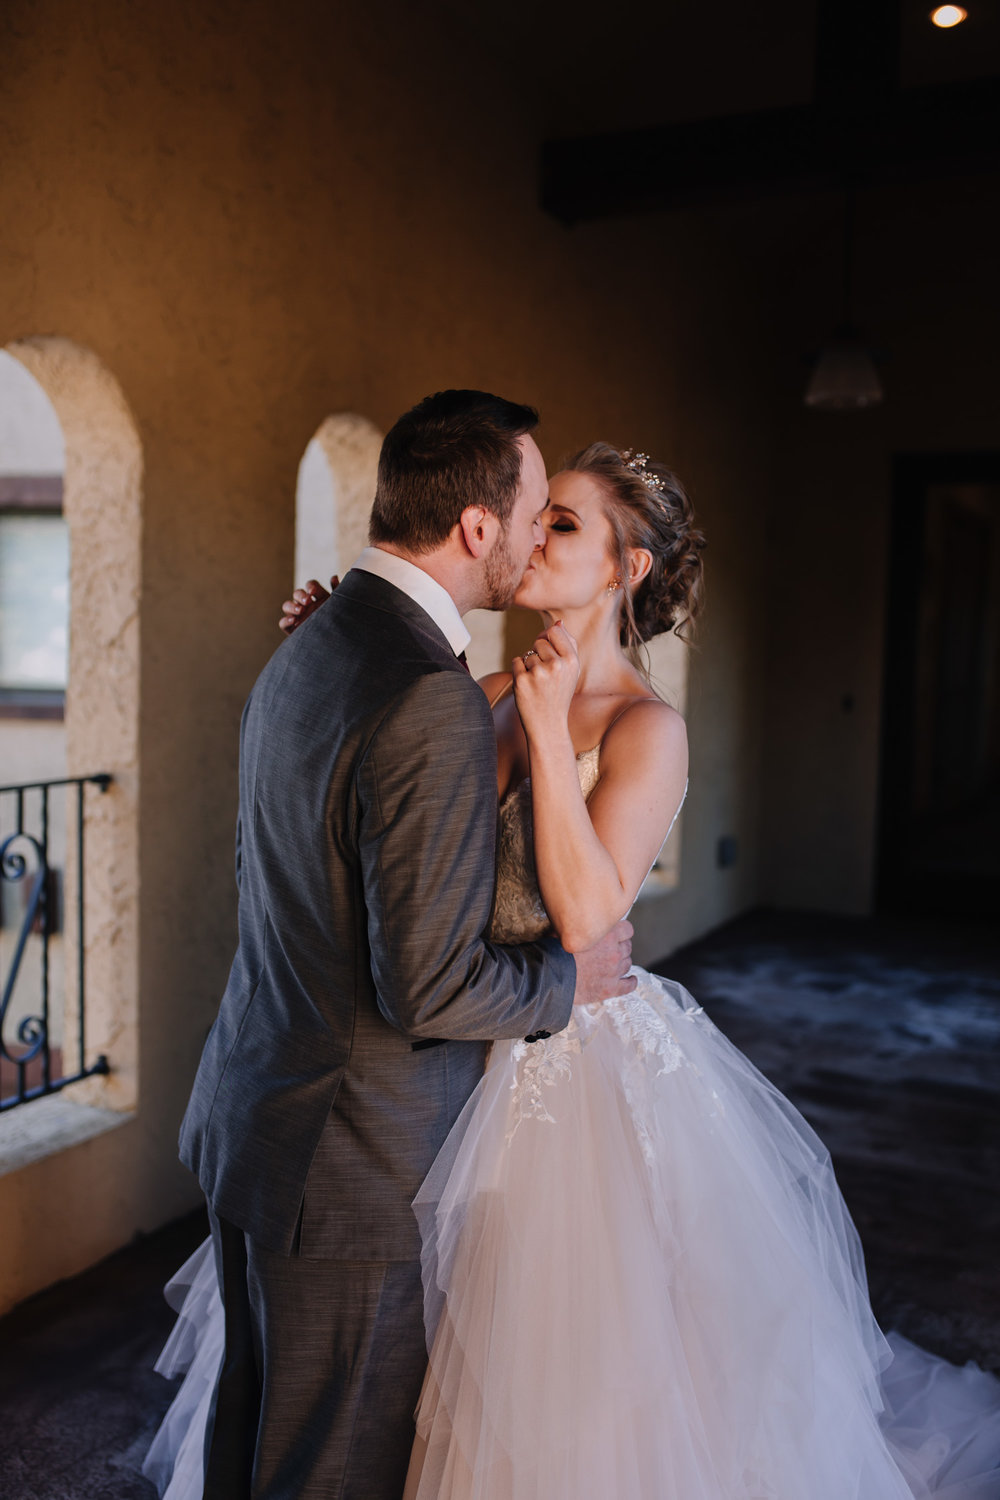 bride and groom First Look wedding photography, pro's and how to have one | Kayli LaFon Photography